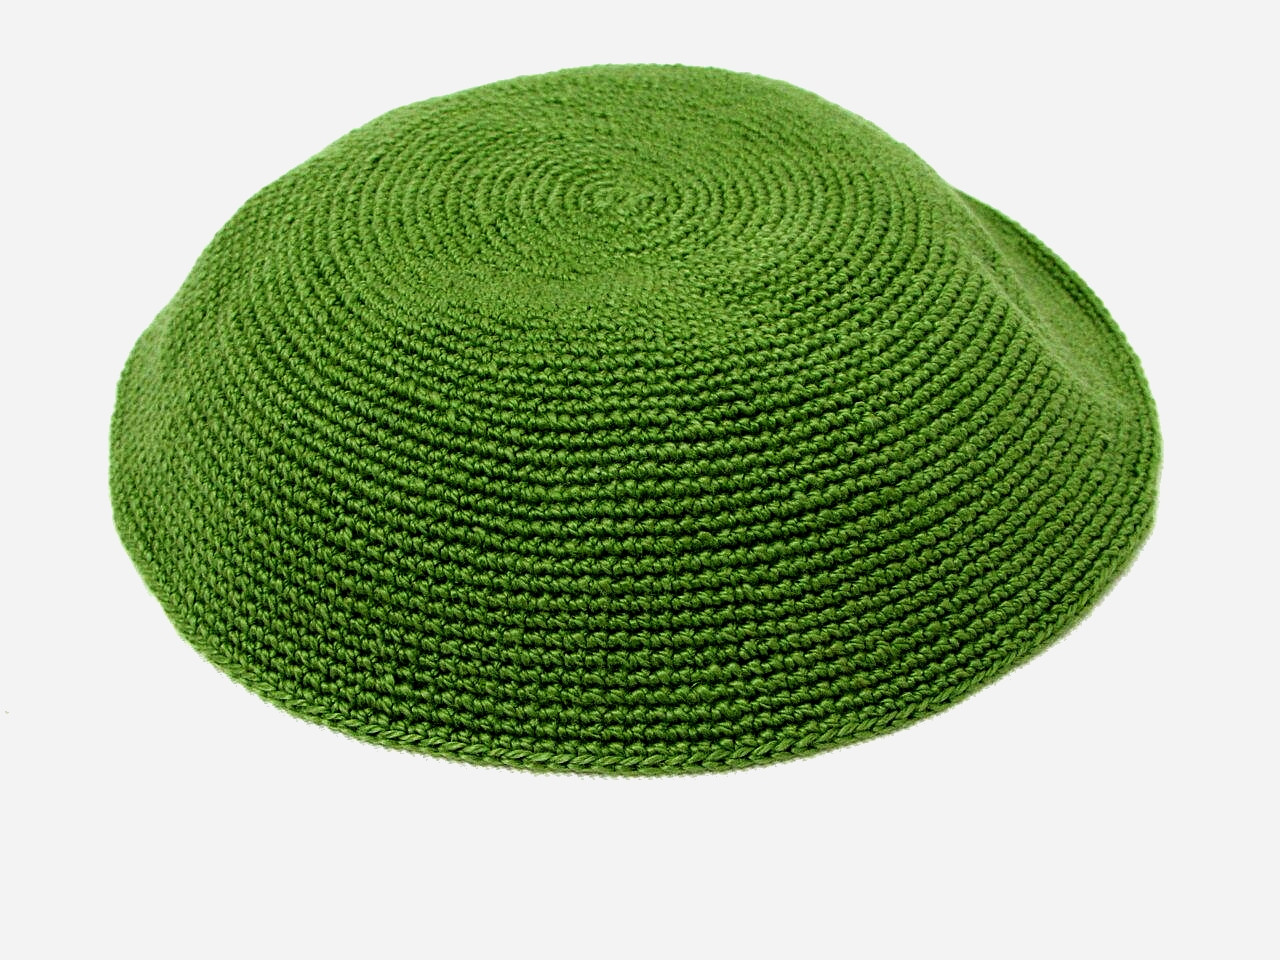 Fern Green DMC Knitted Kippah